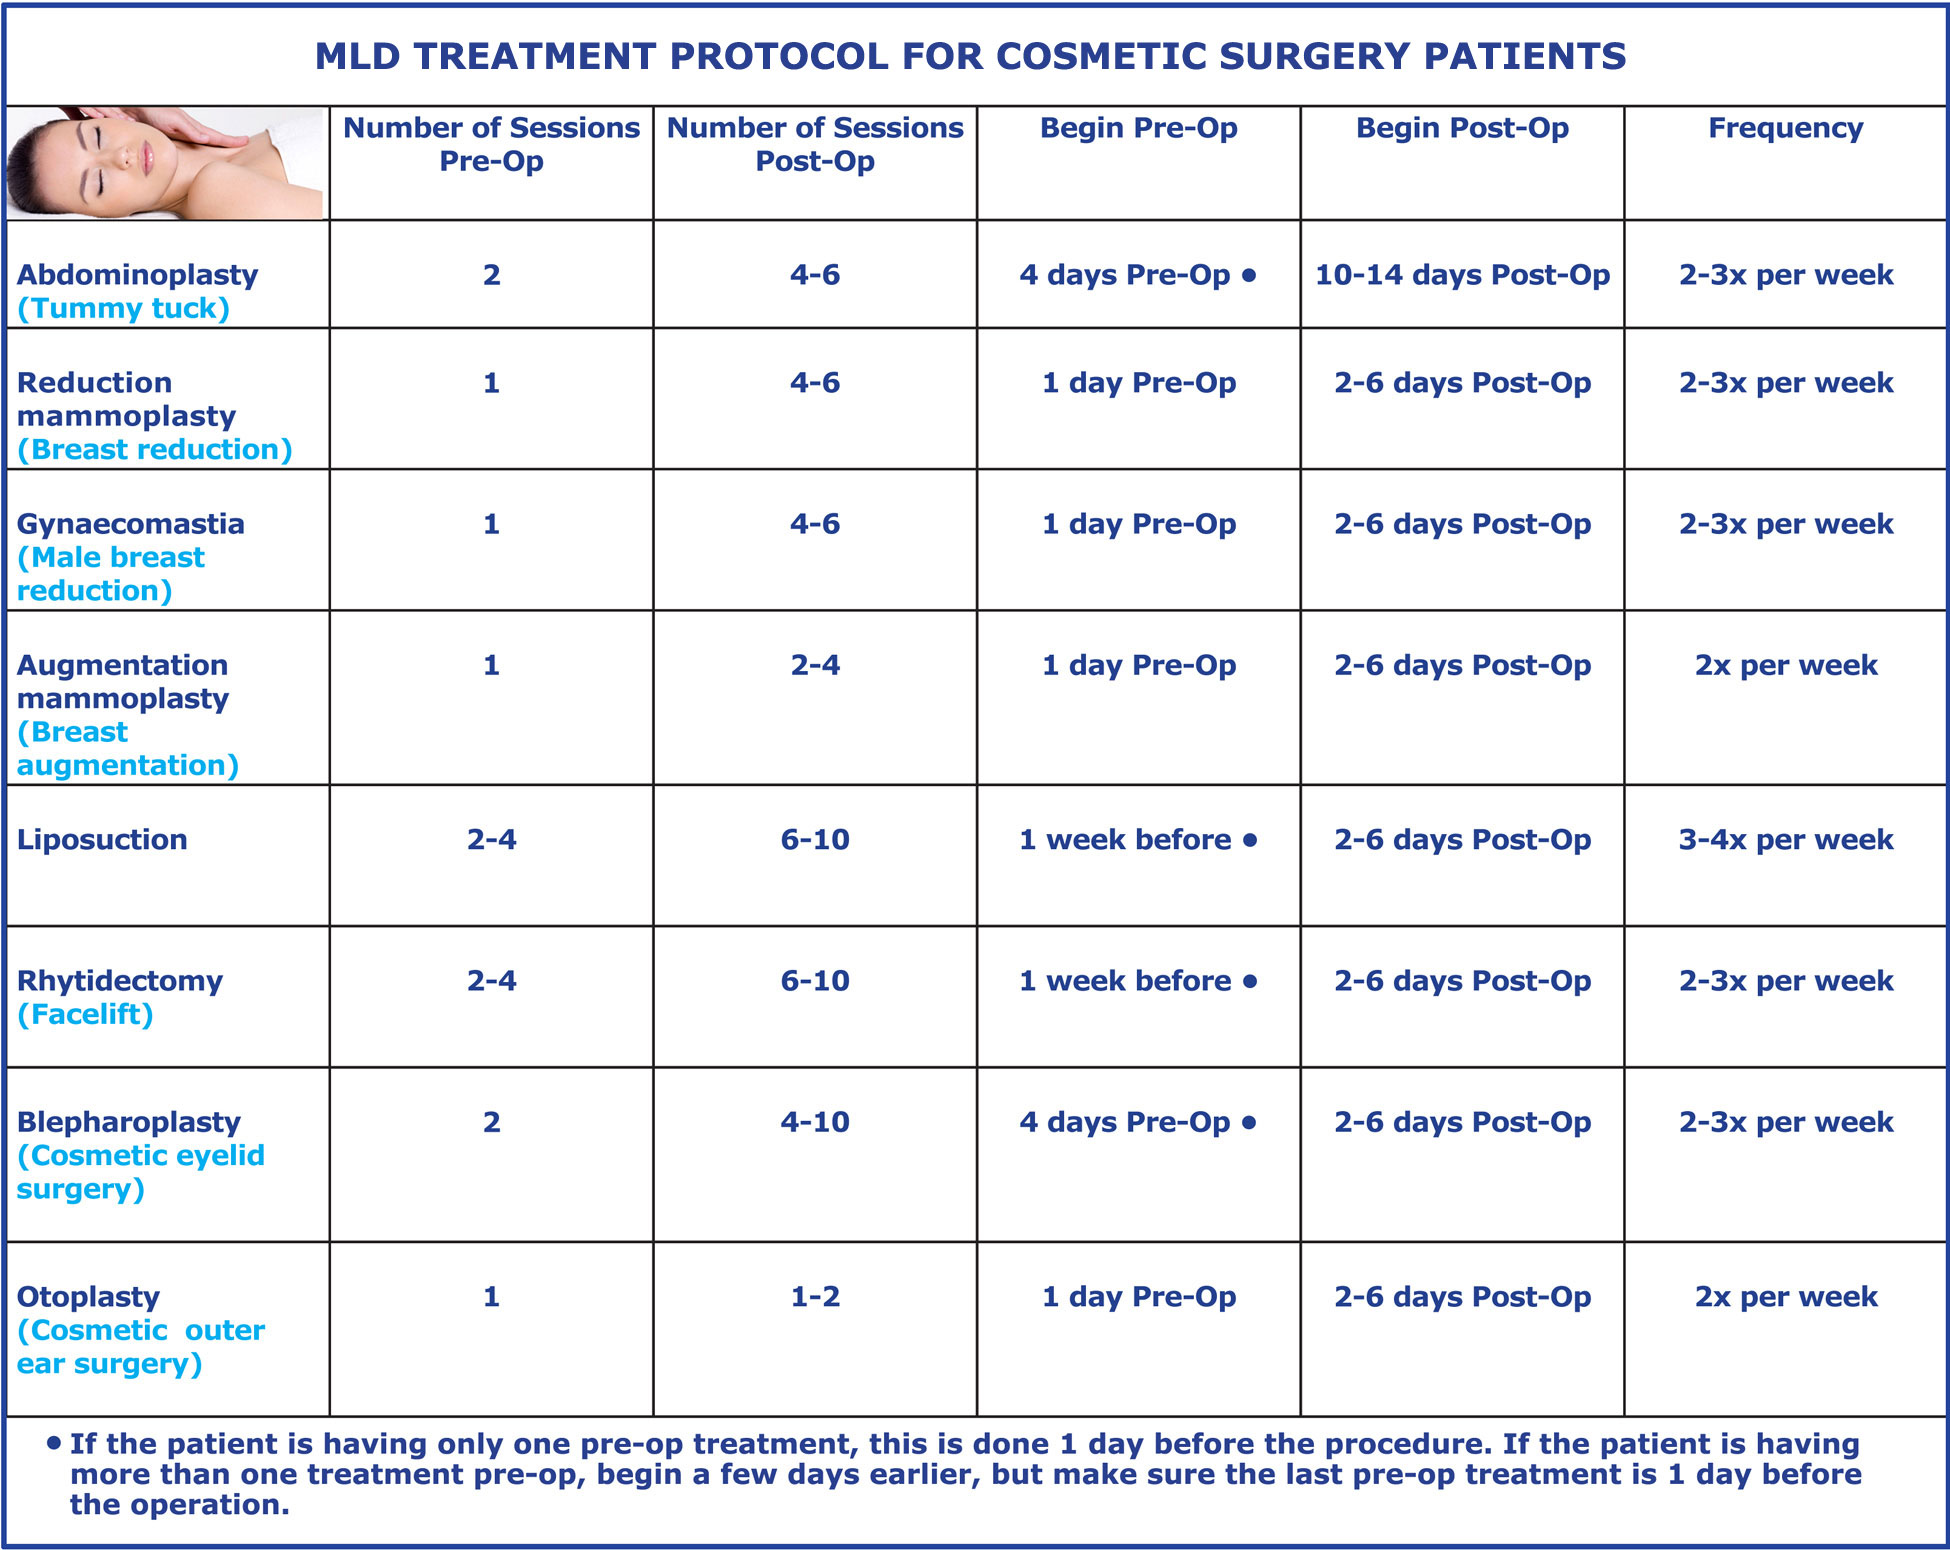 MLD protocol for cosmetic surgery patients